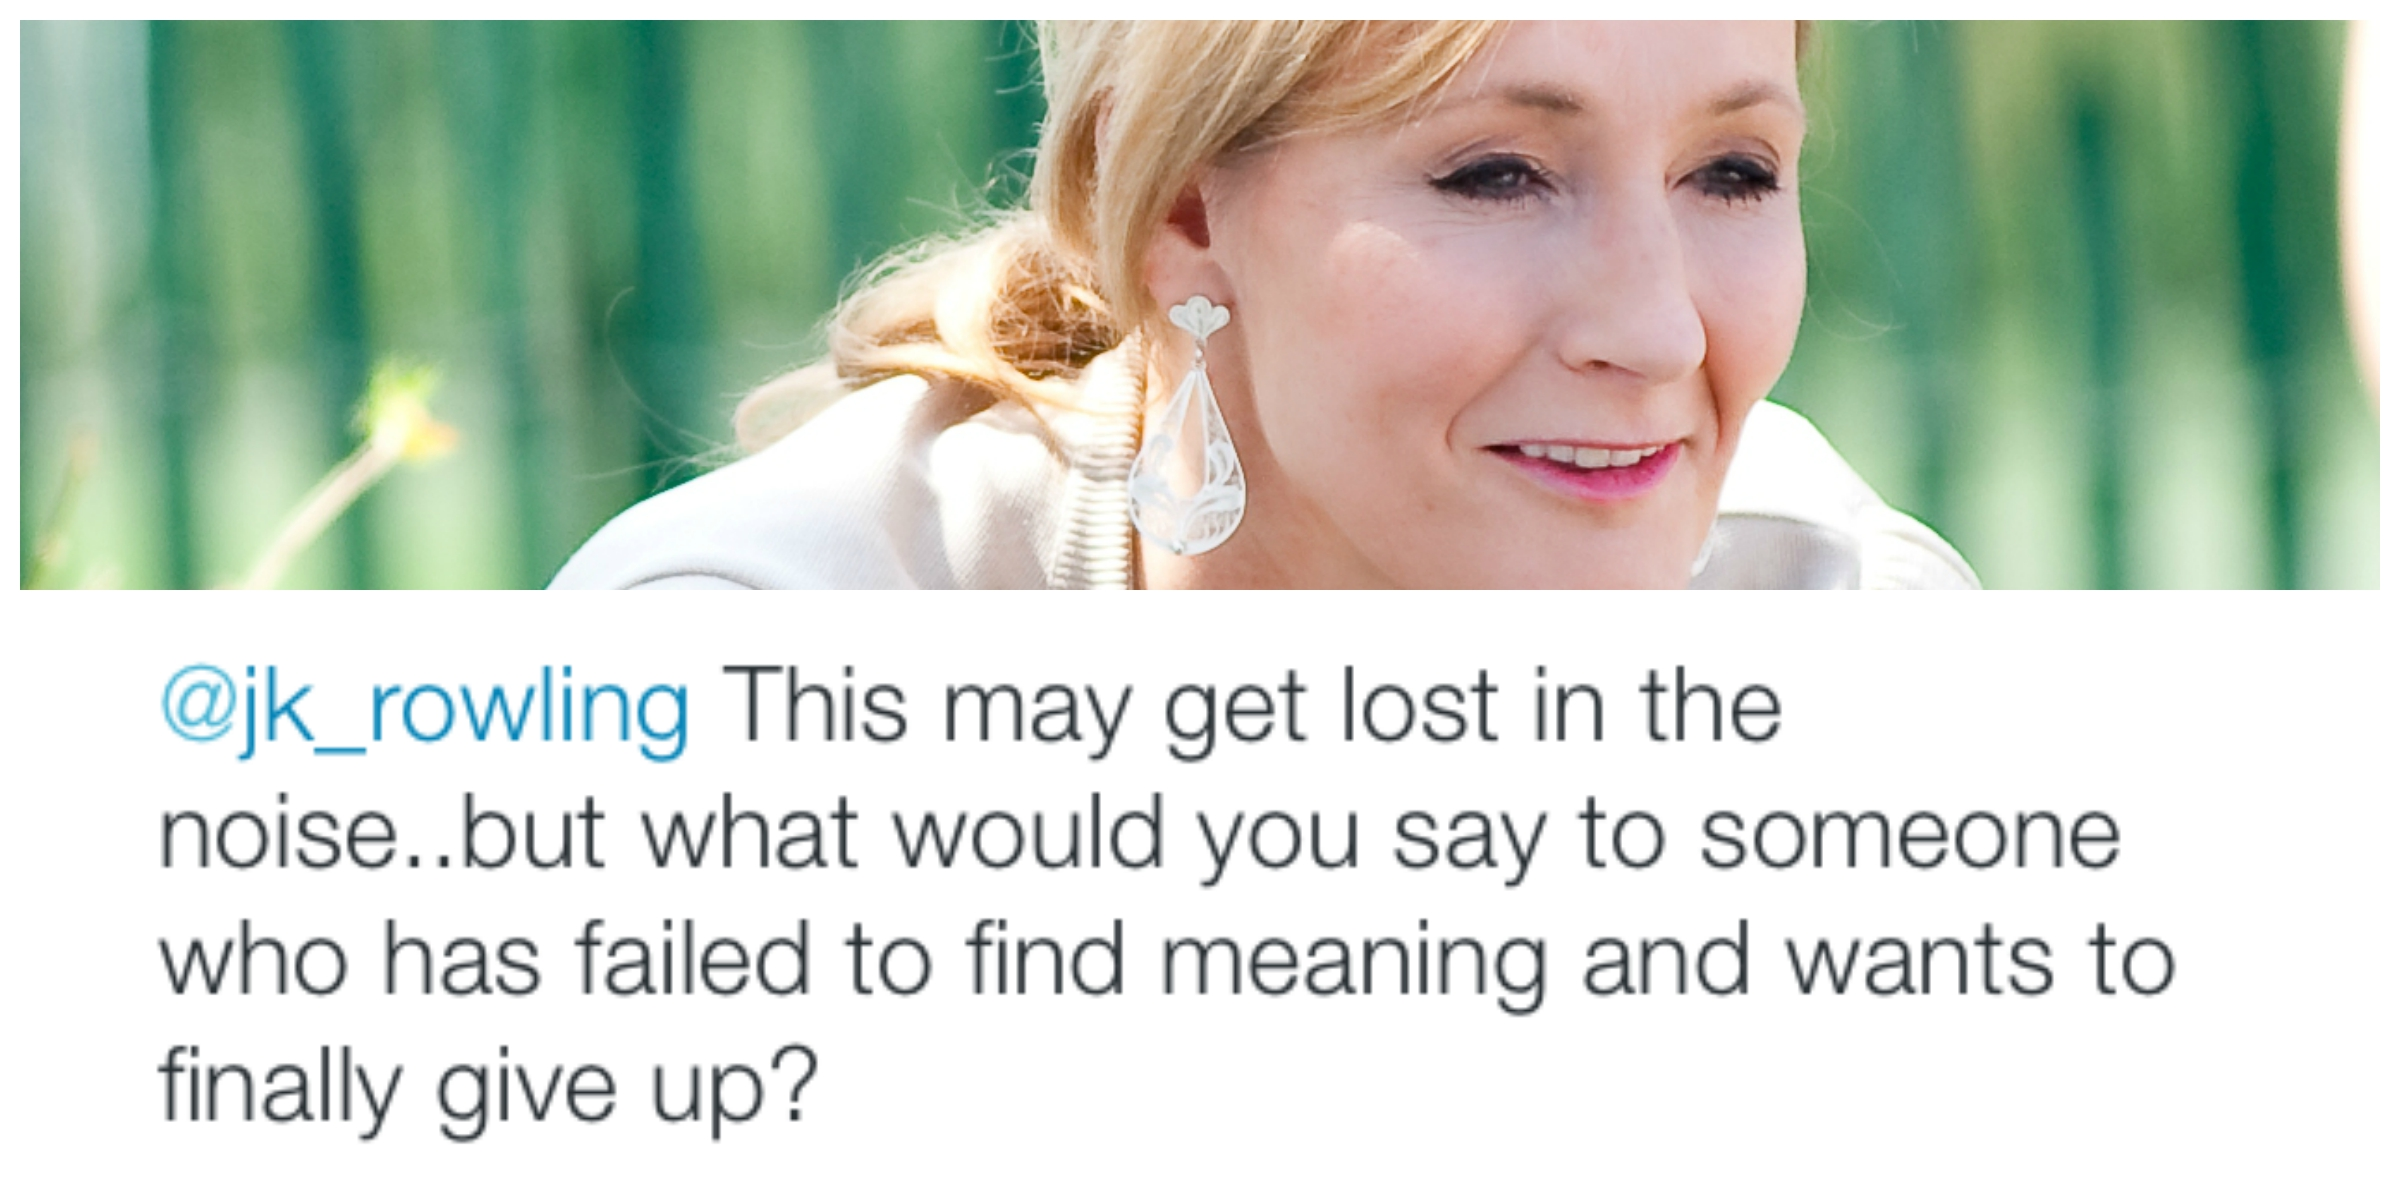 Did J.K. Rowling Just Prevent a Suicide?